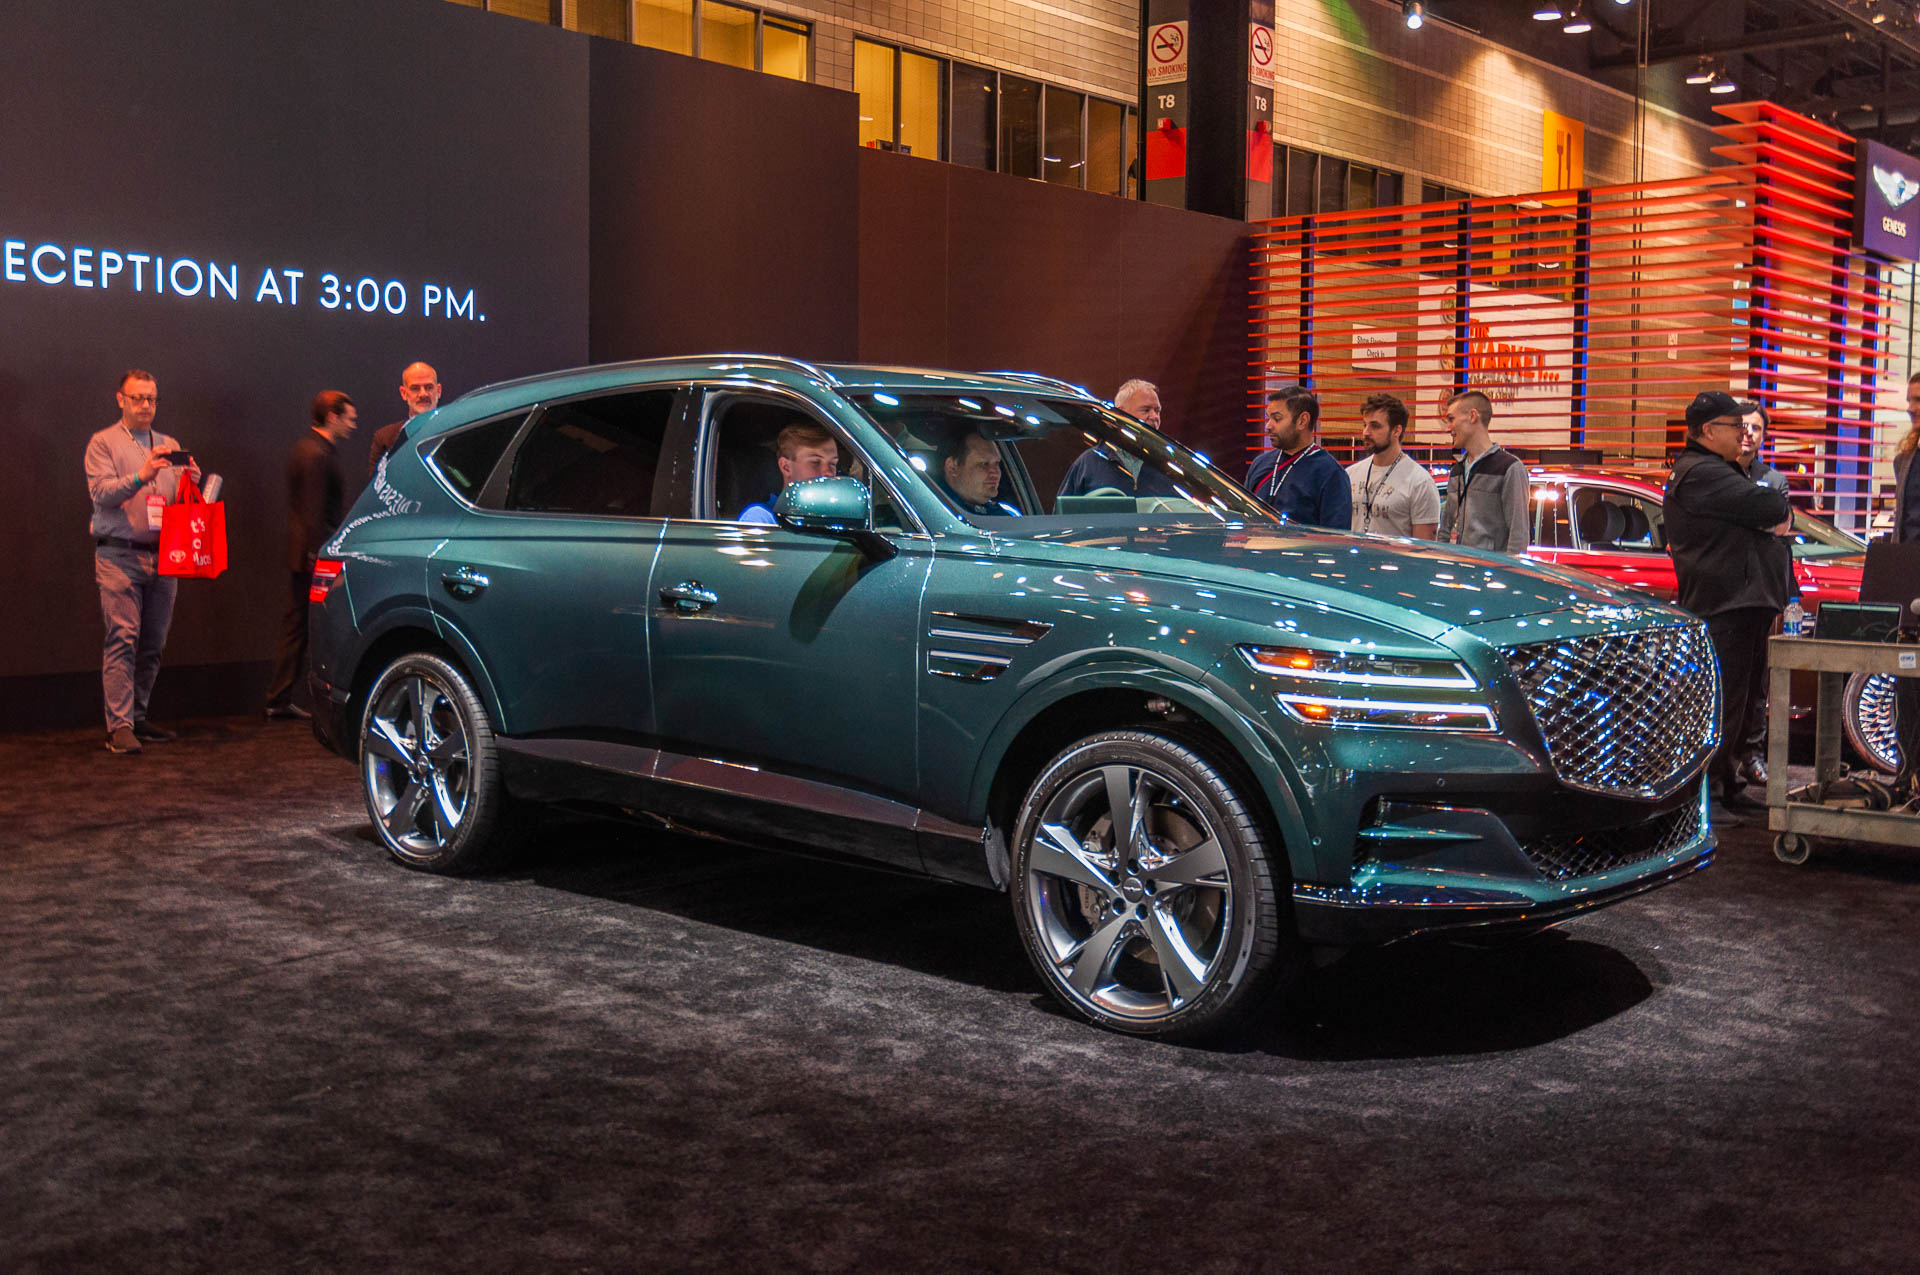 The $49,925 2021 Genesis GV80 is a chic, luxury crossover steal